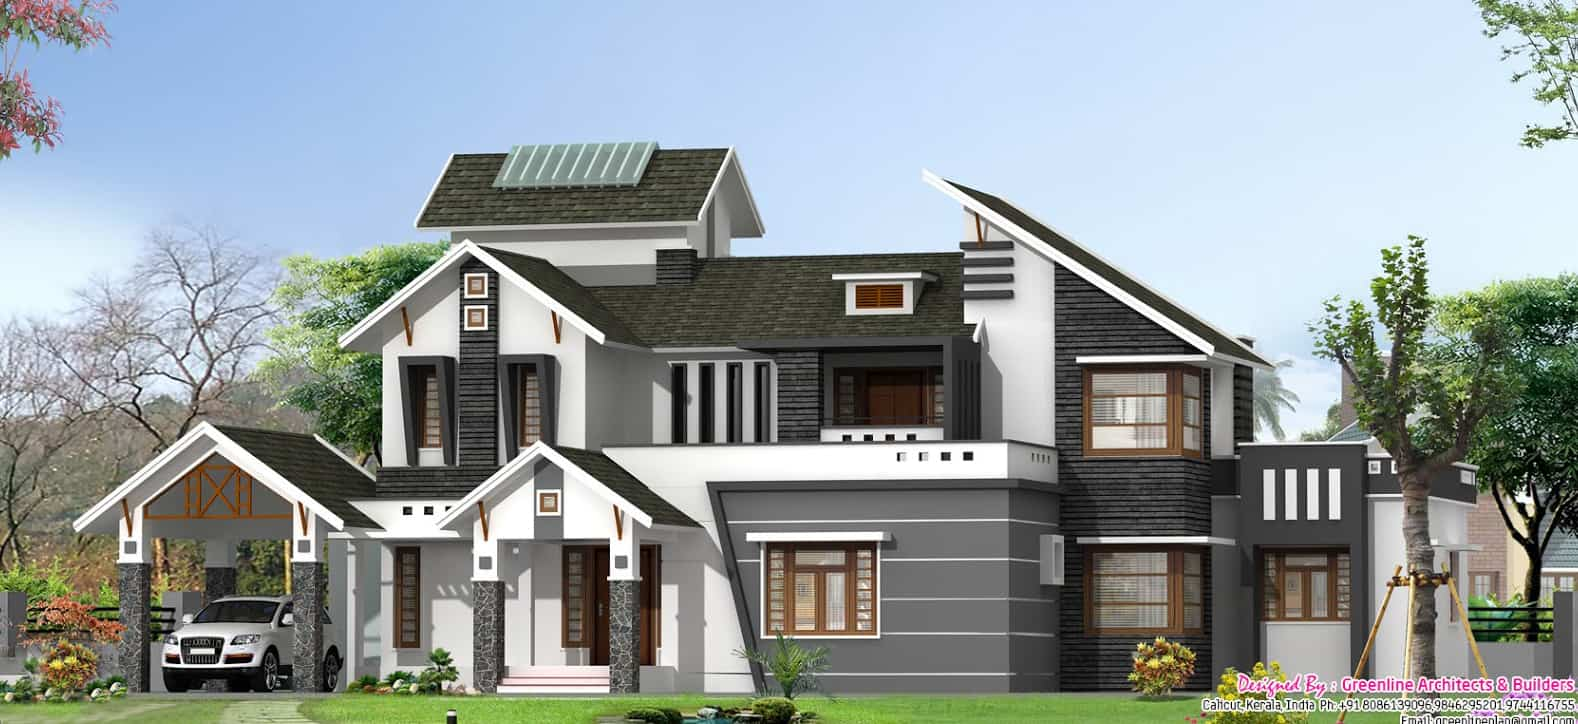 Unique house designs keralahouseplanner for New house design photos